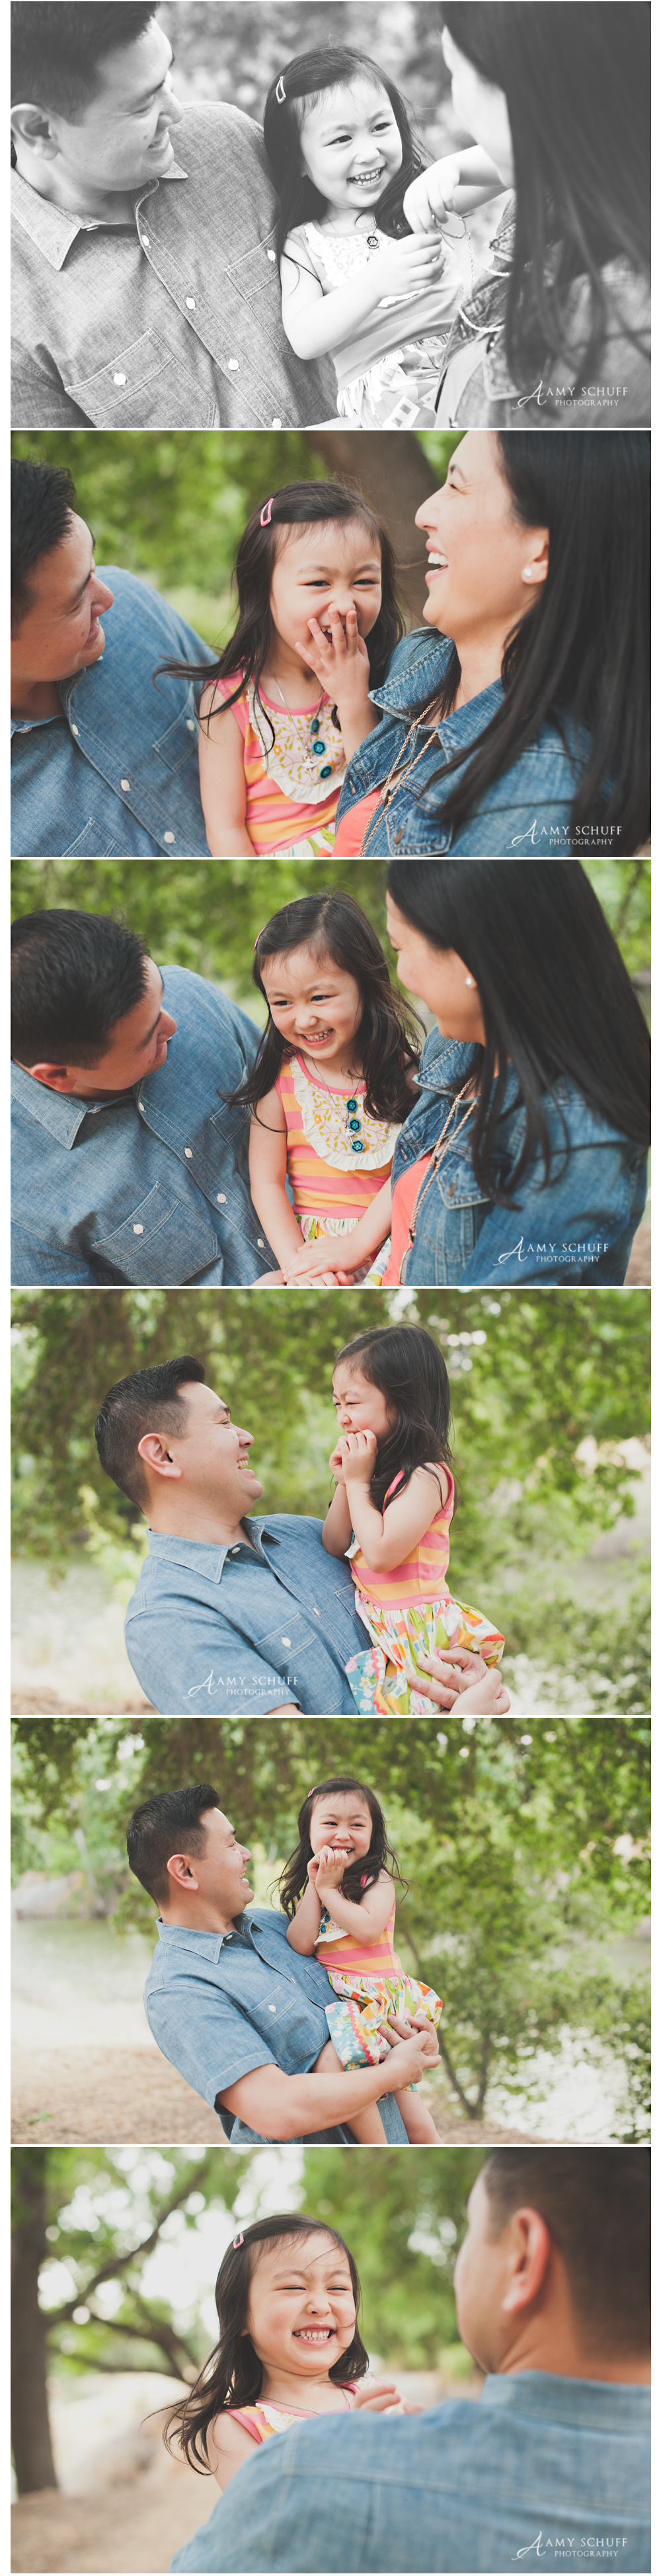 Sacramento Family Photography Mini Sessions